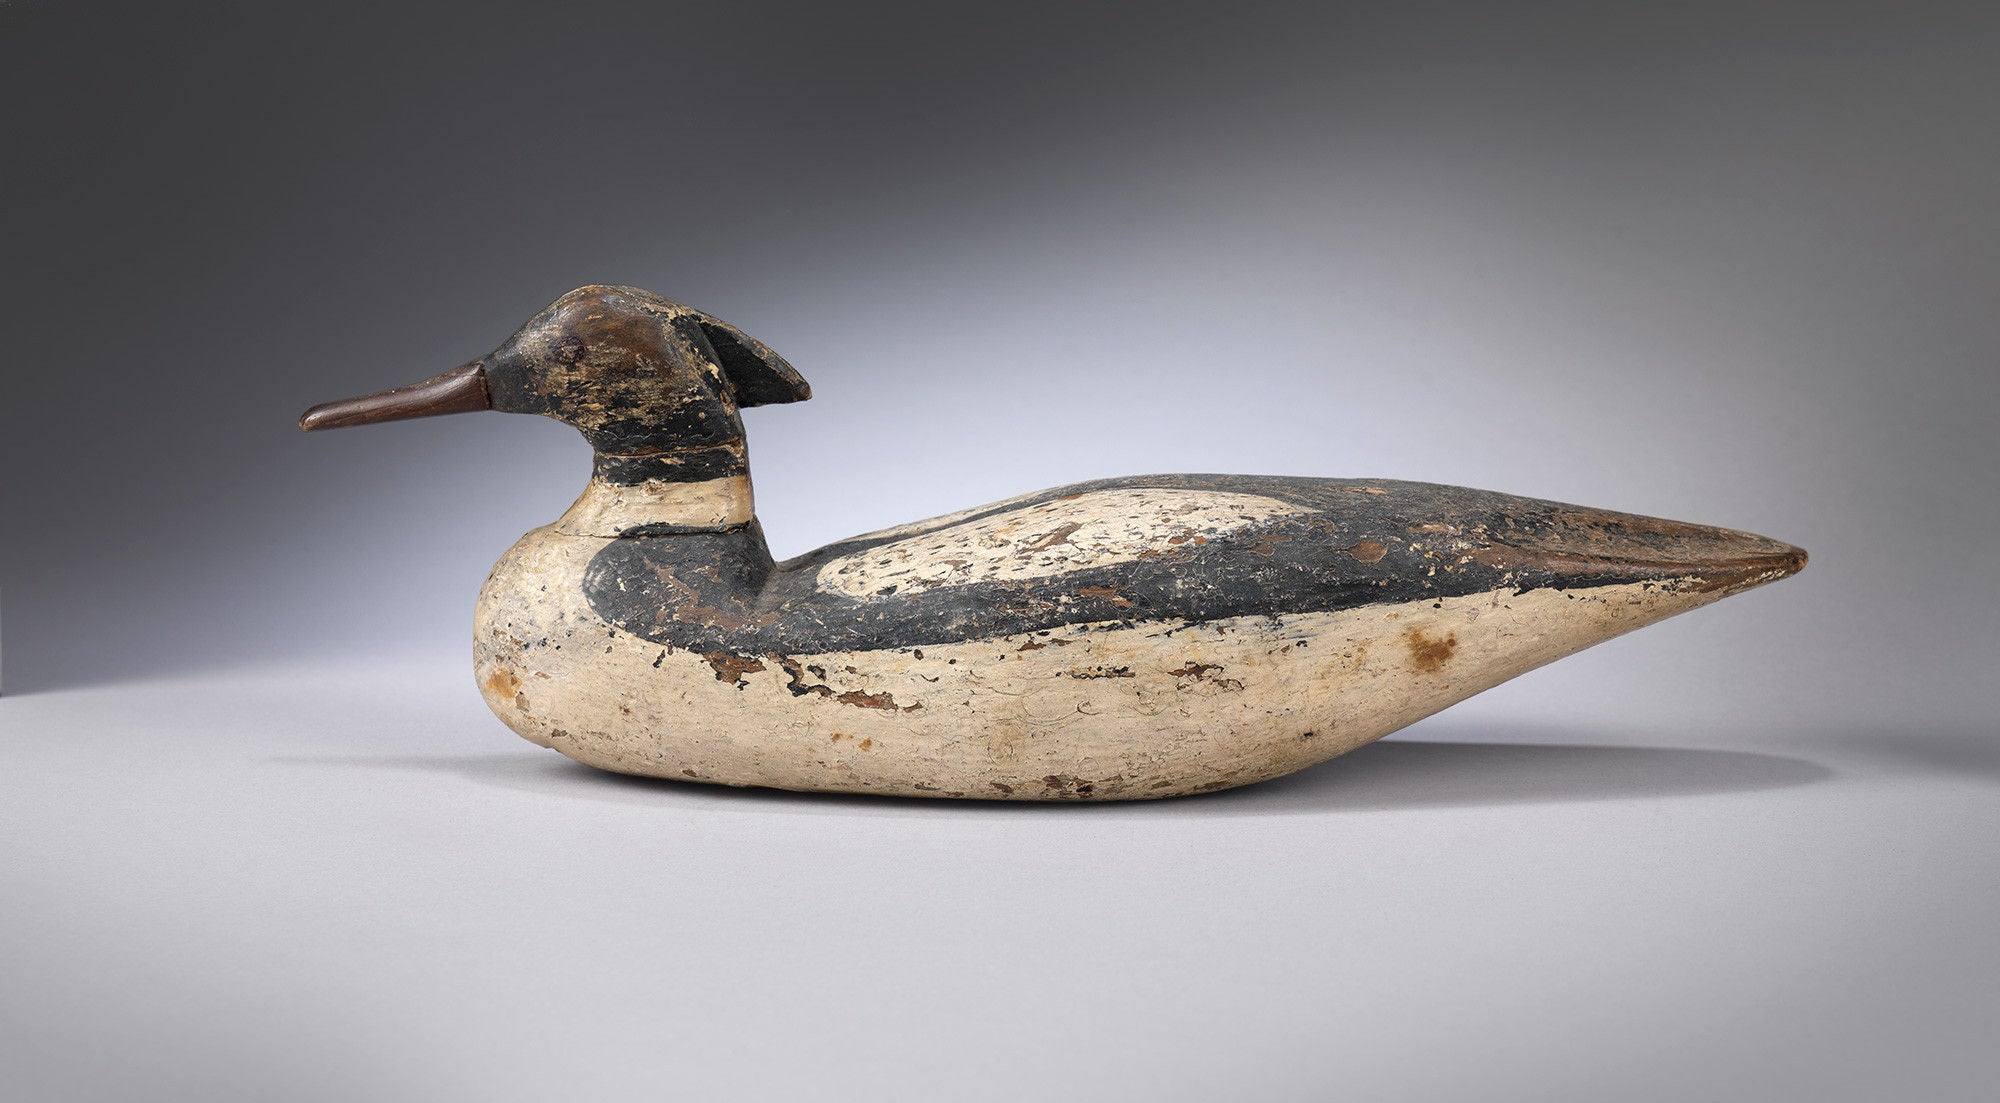 Original Working Merganser Duck Decoy